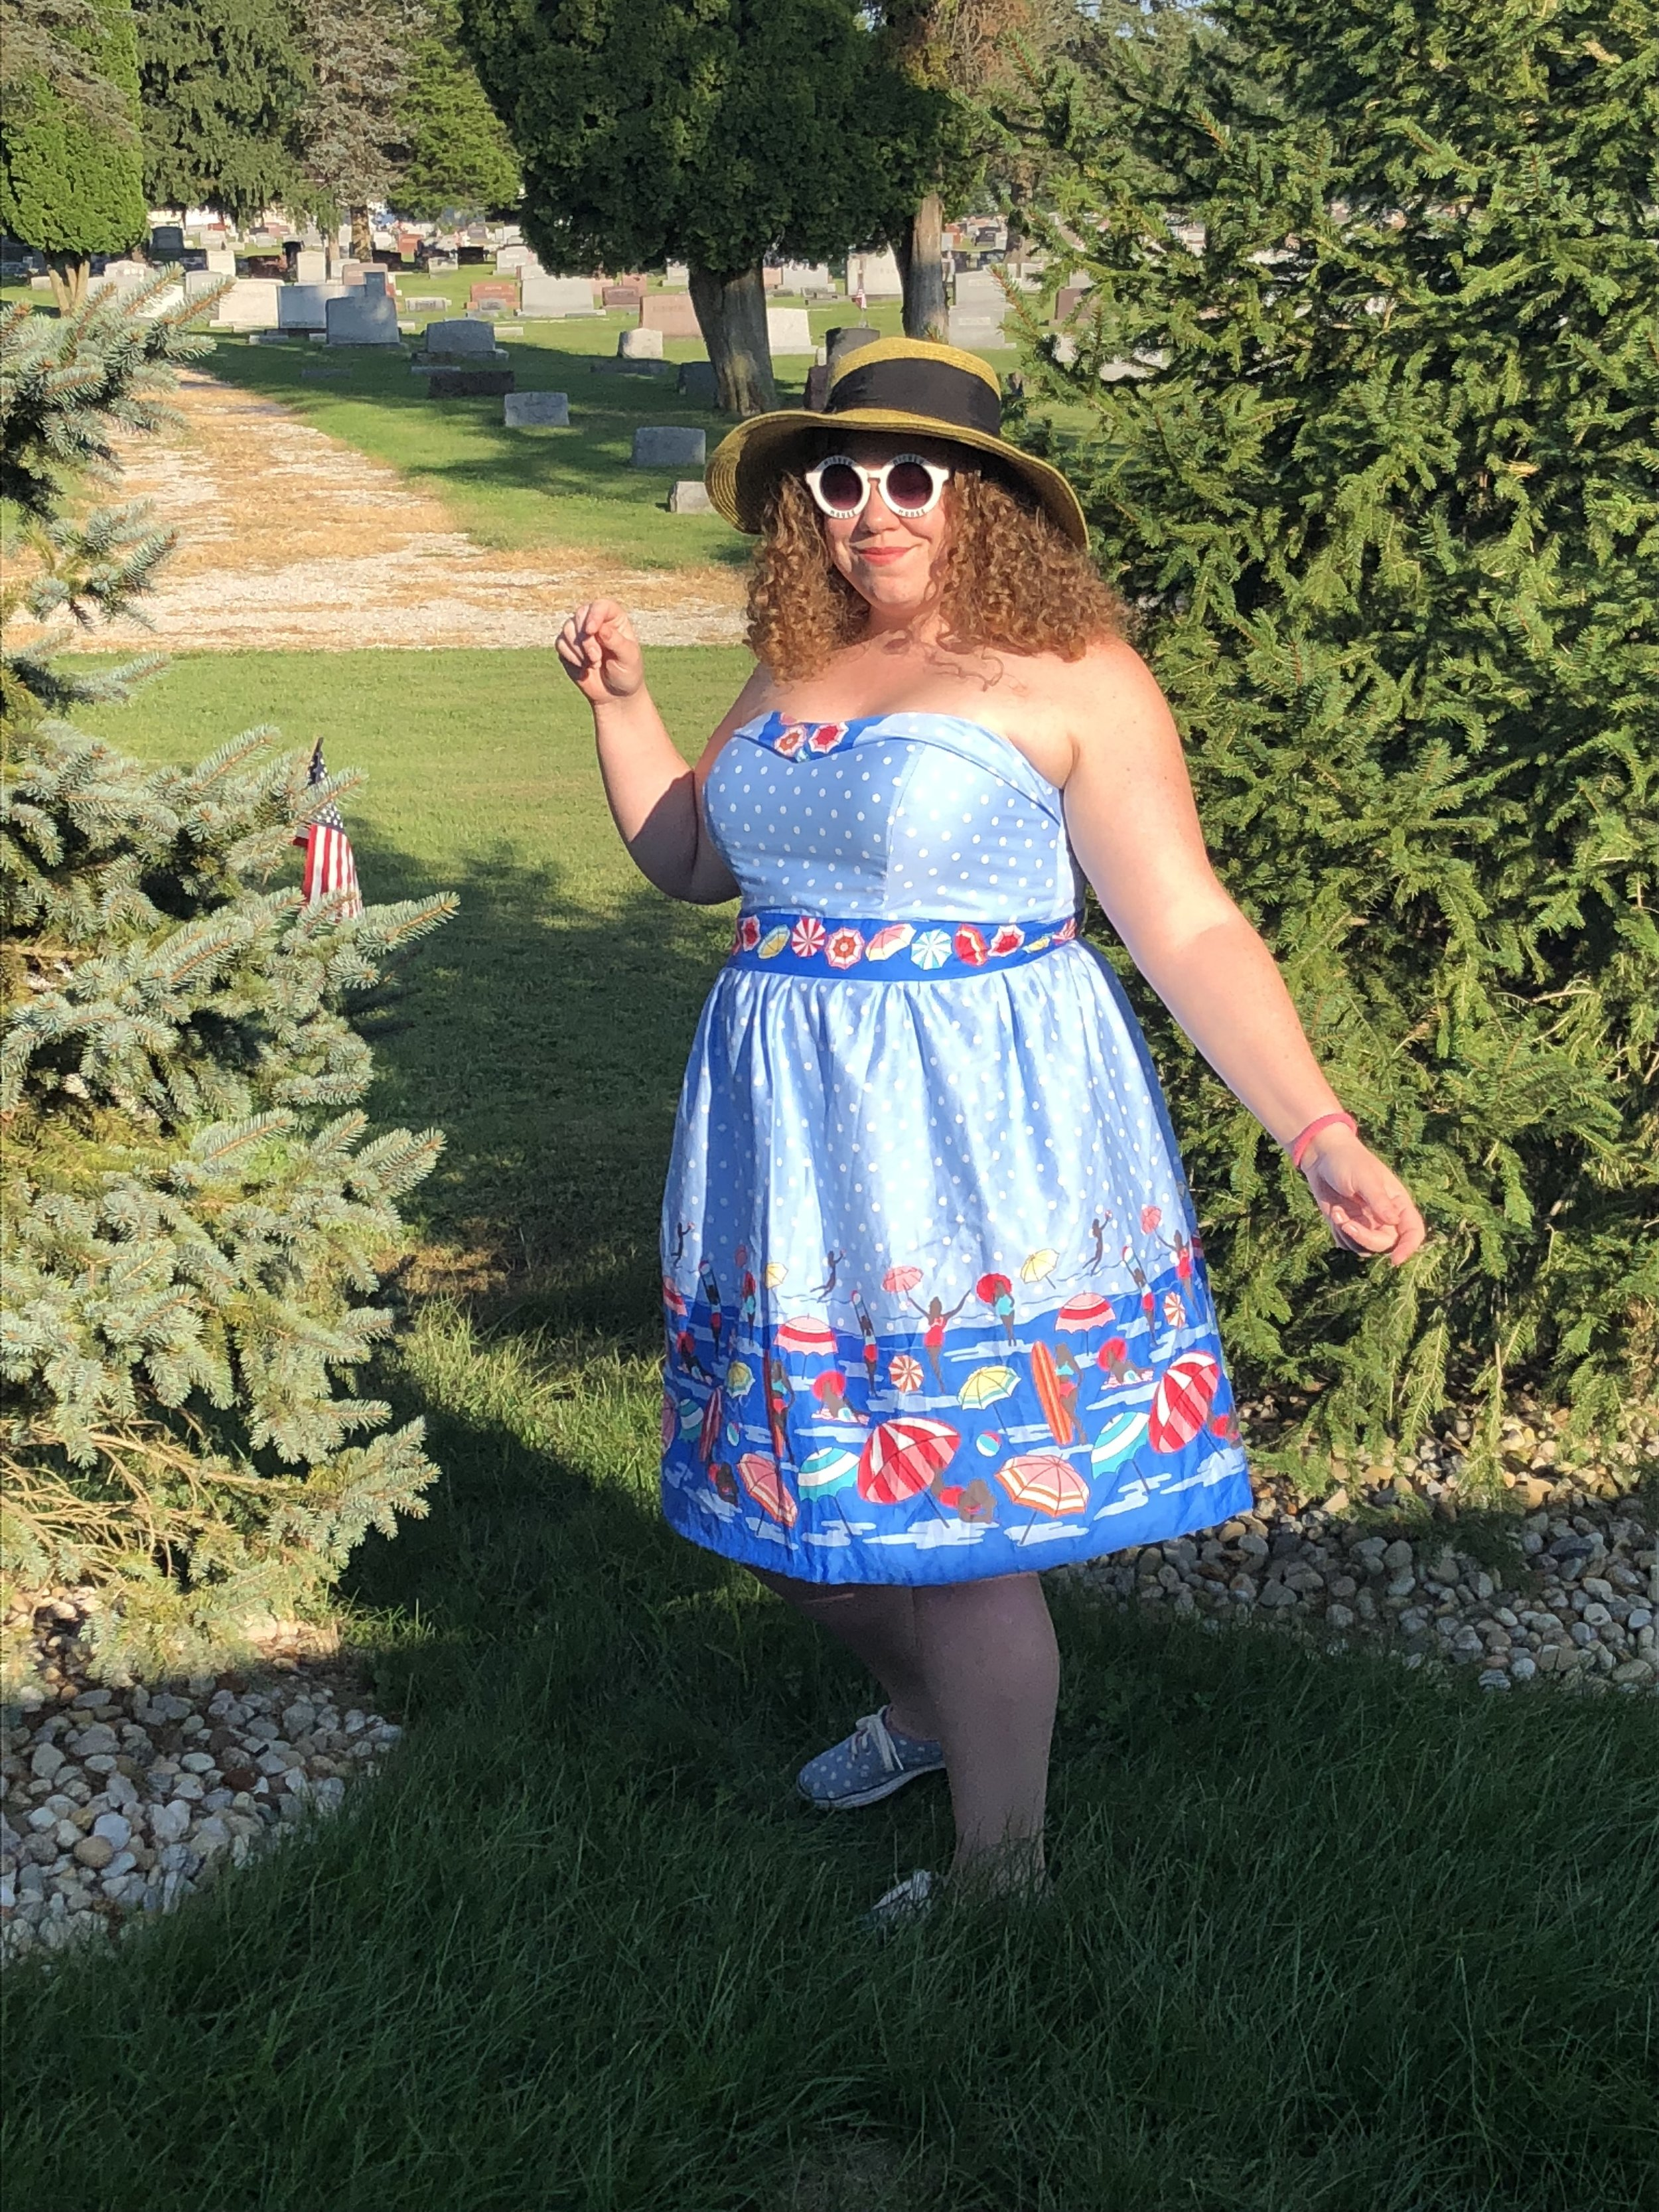 Woman with curly auburn hair standing outside with a sun hat and sunglasses on wearing a blue polka dot dress with pinups in swimsuits printed on it. A cemetery lies behind her.